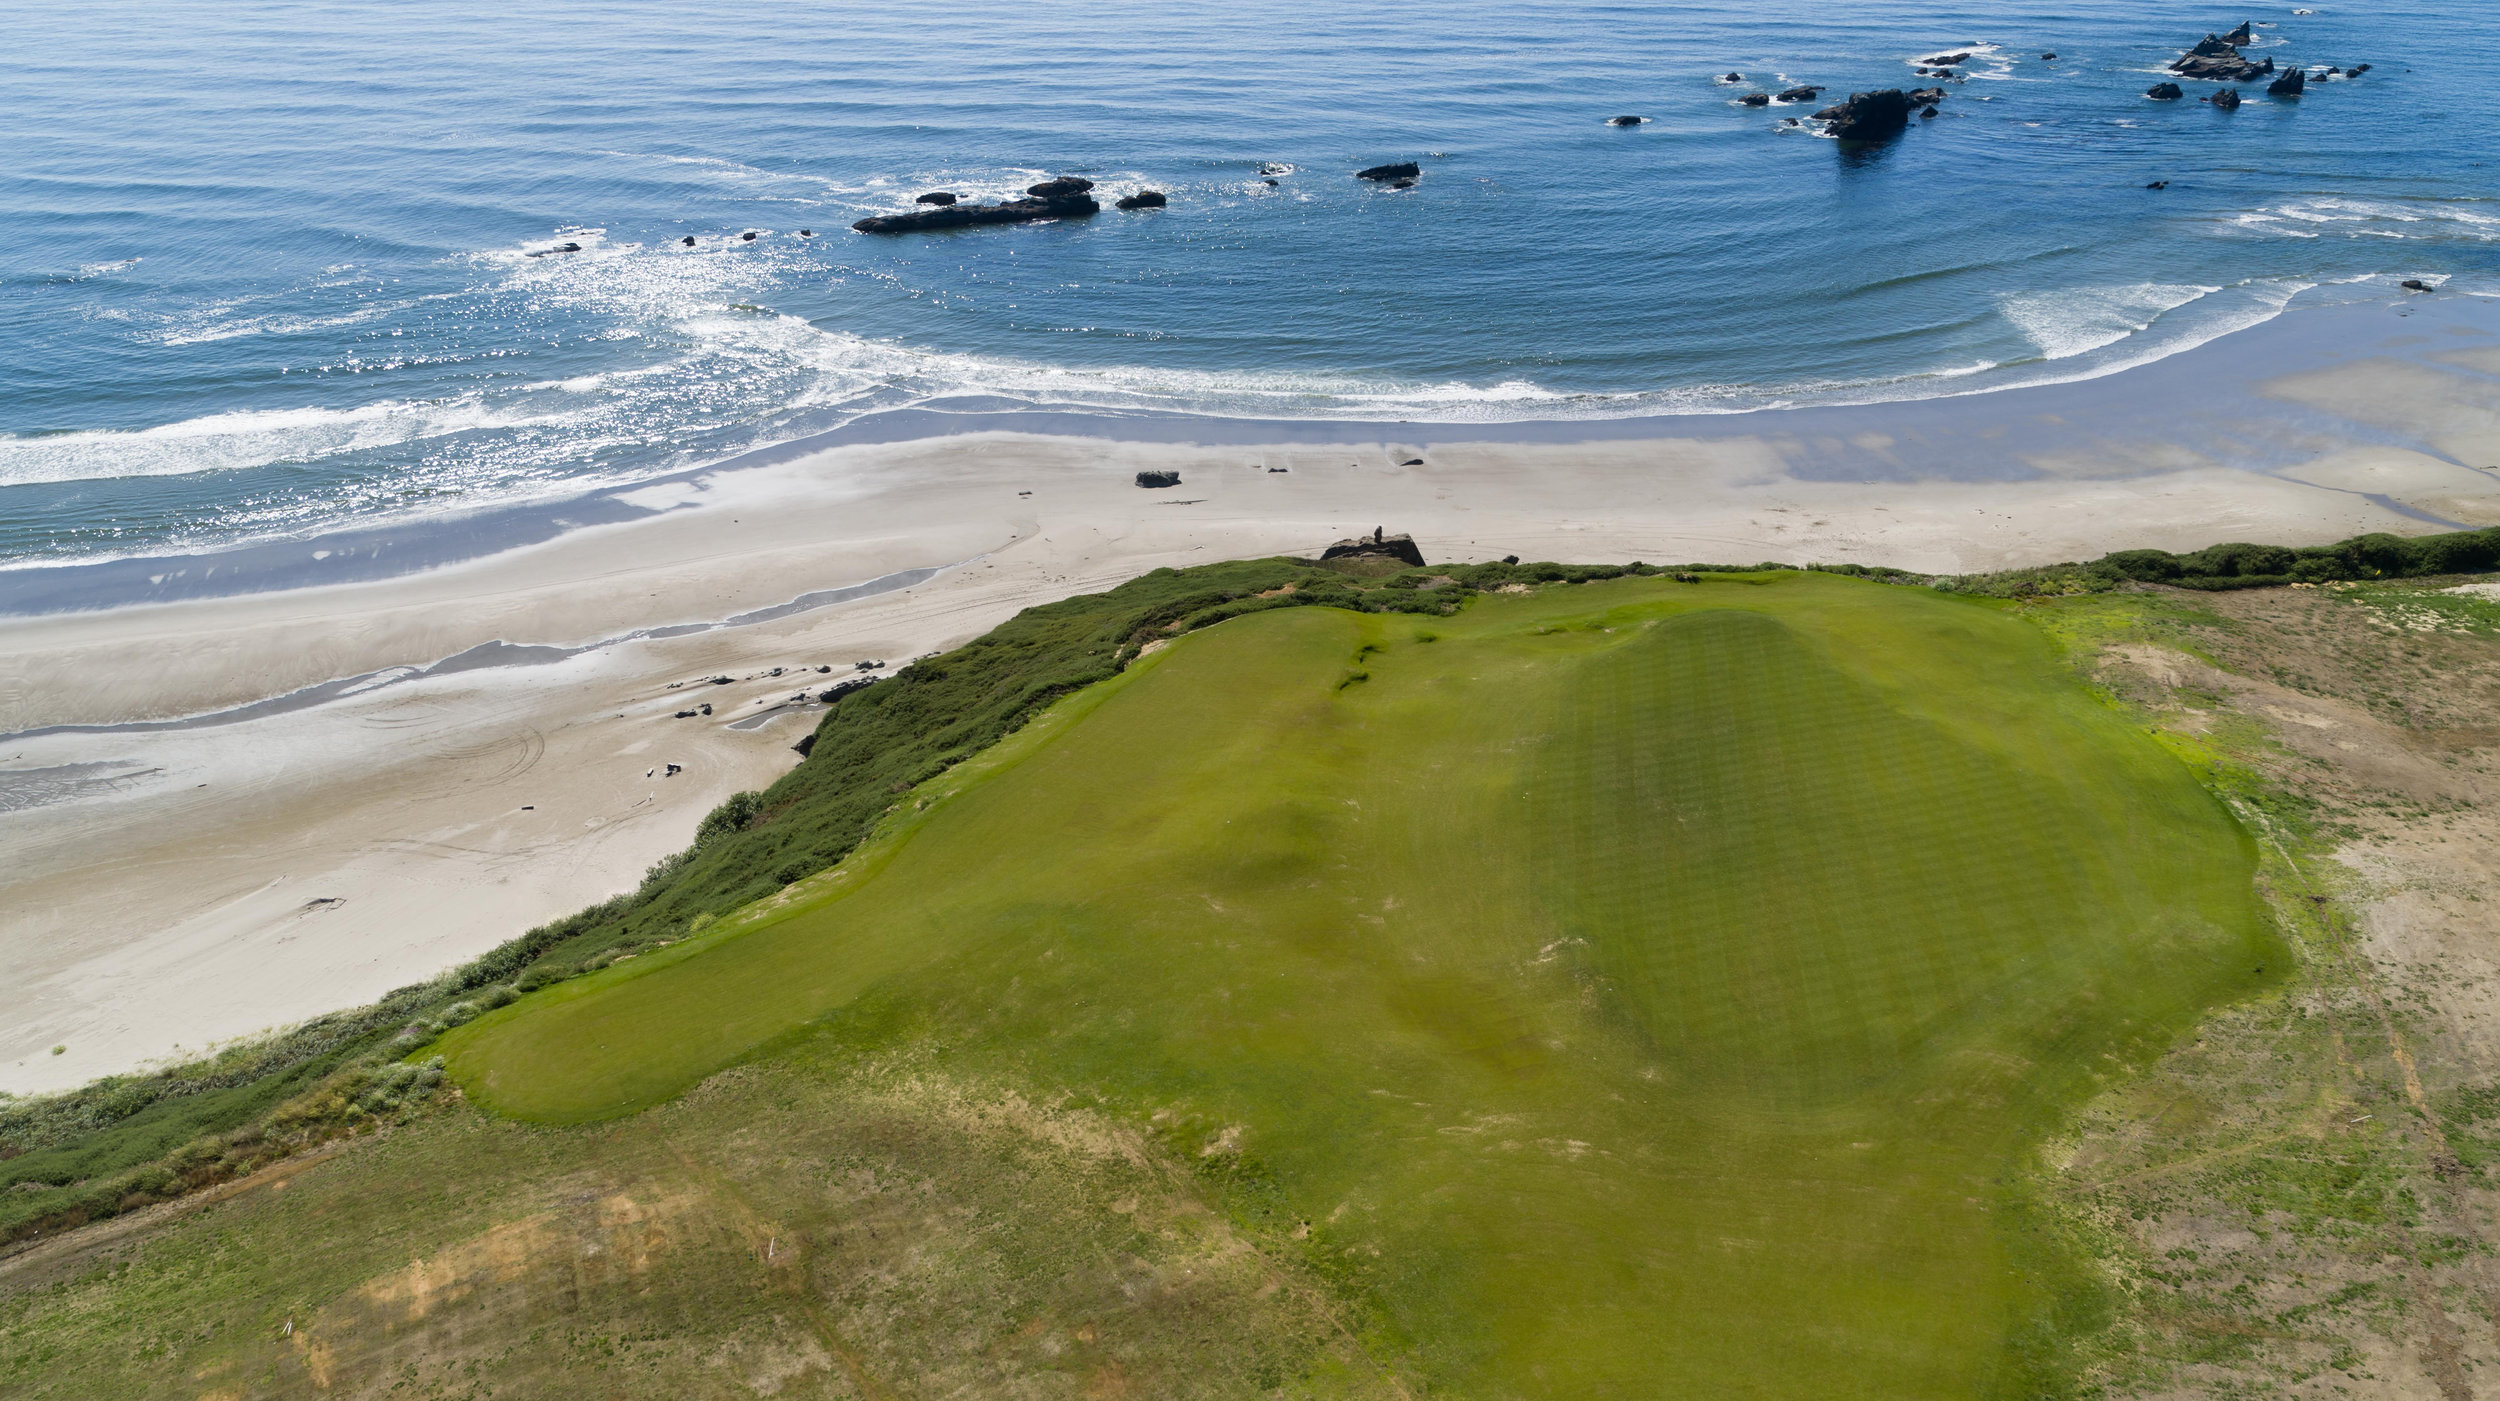 The next peninsula just south of 5 Mile Point, is home to both the 5th green and 6th tee. Sheep Ranch No. 5 is a Par-3 that runs directly west making for a challenging crosswind when playing your tee shot.